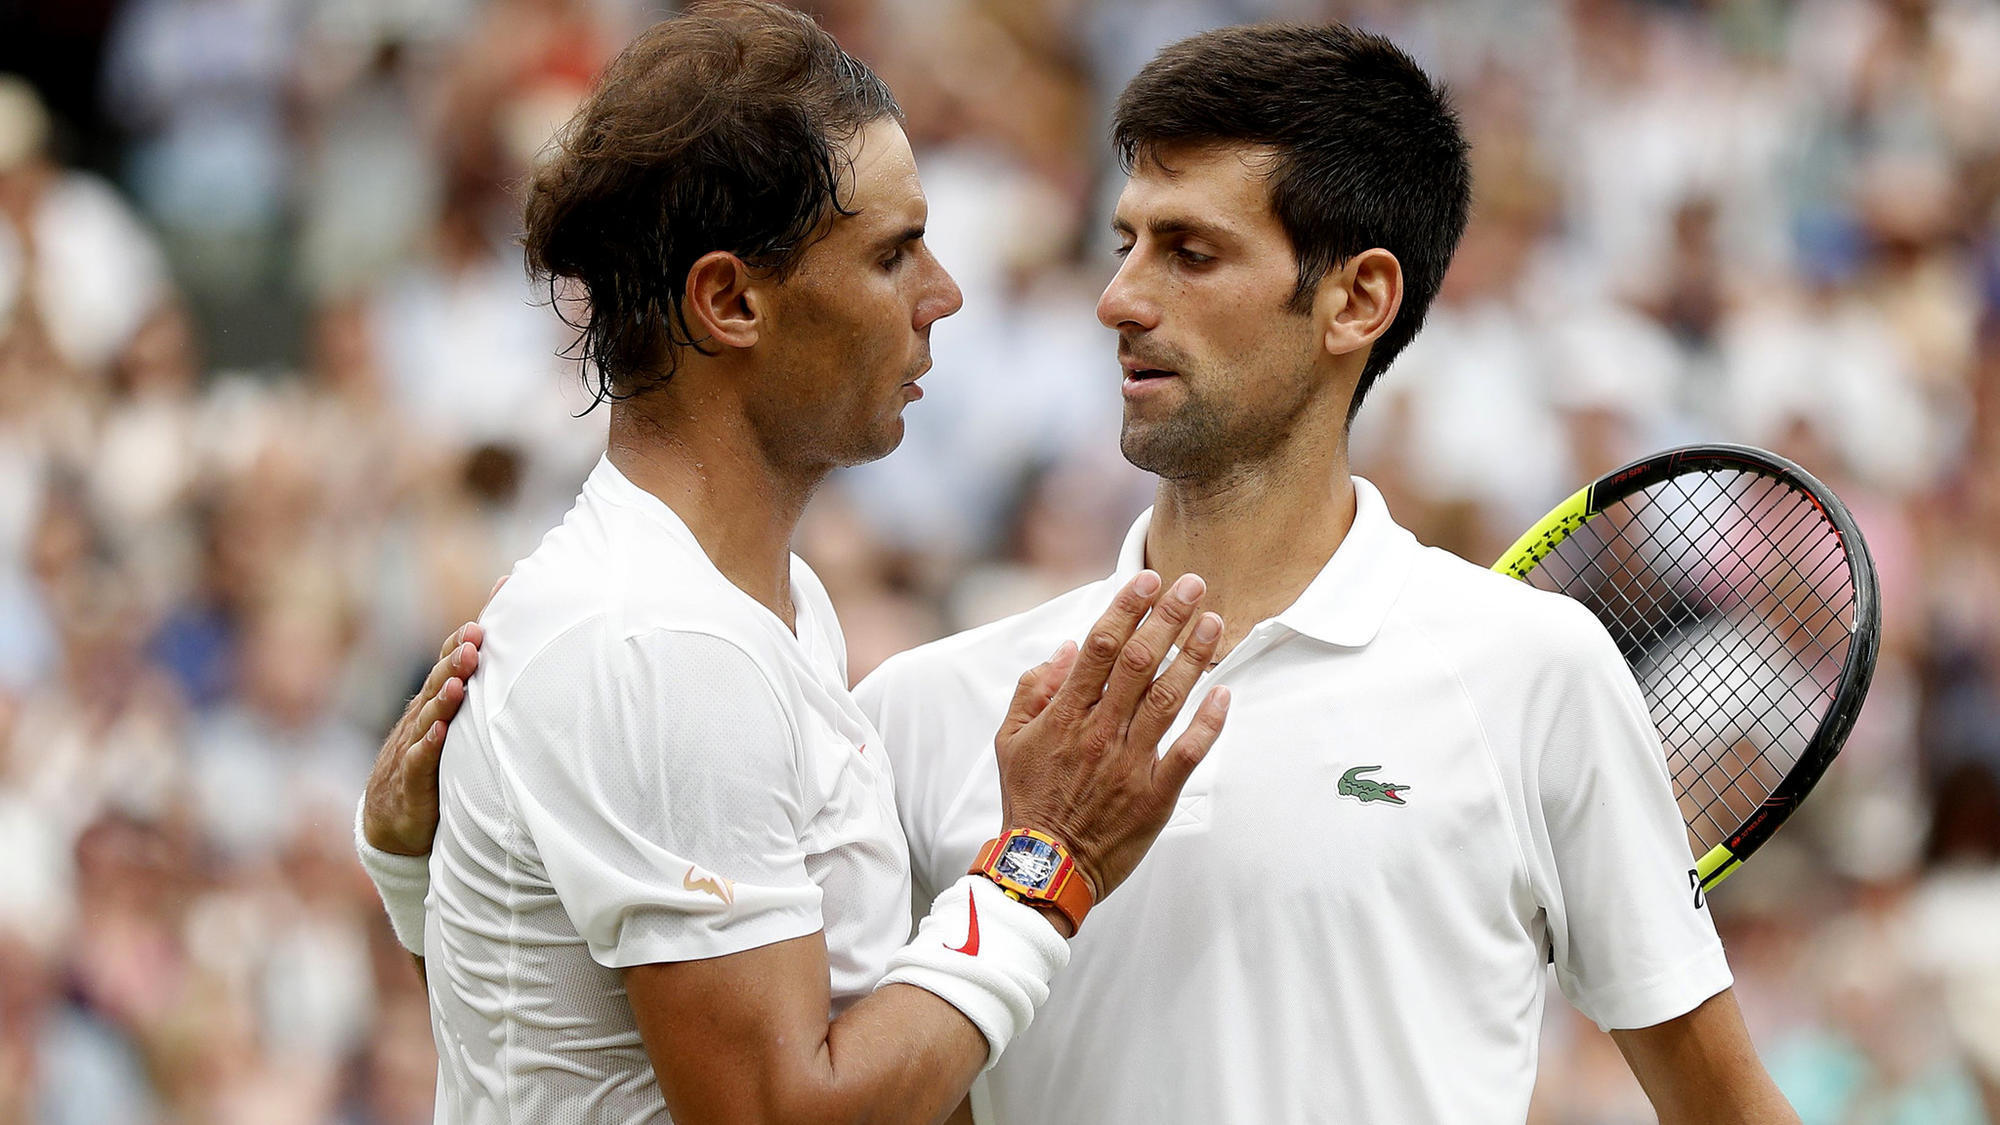 171b4b08b4ad FWC  Novak Djokovic advances to Wimbledon final by beating Rafael Nadal  10-8 in fifth set